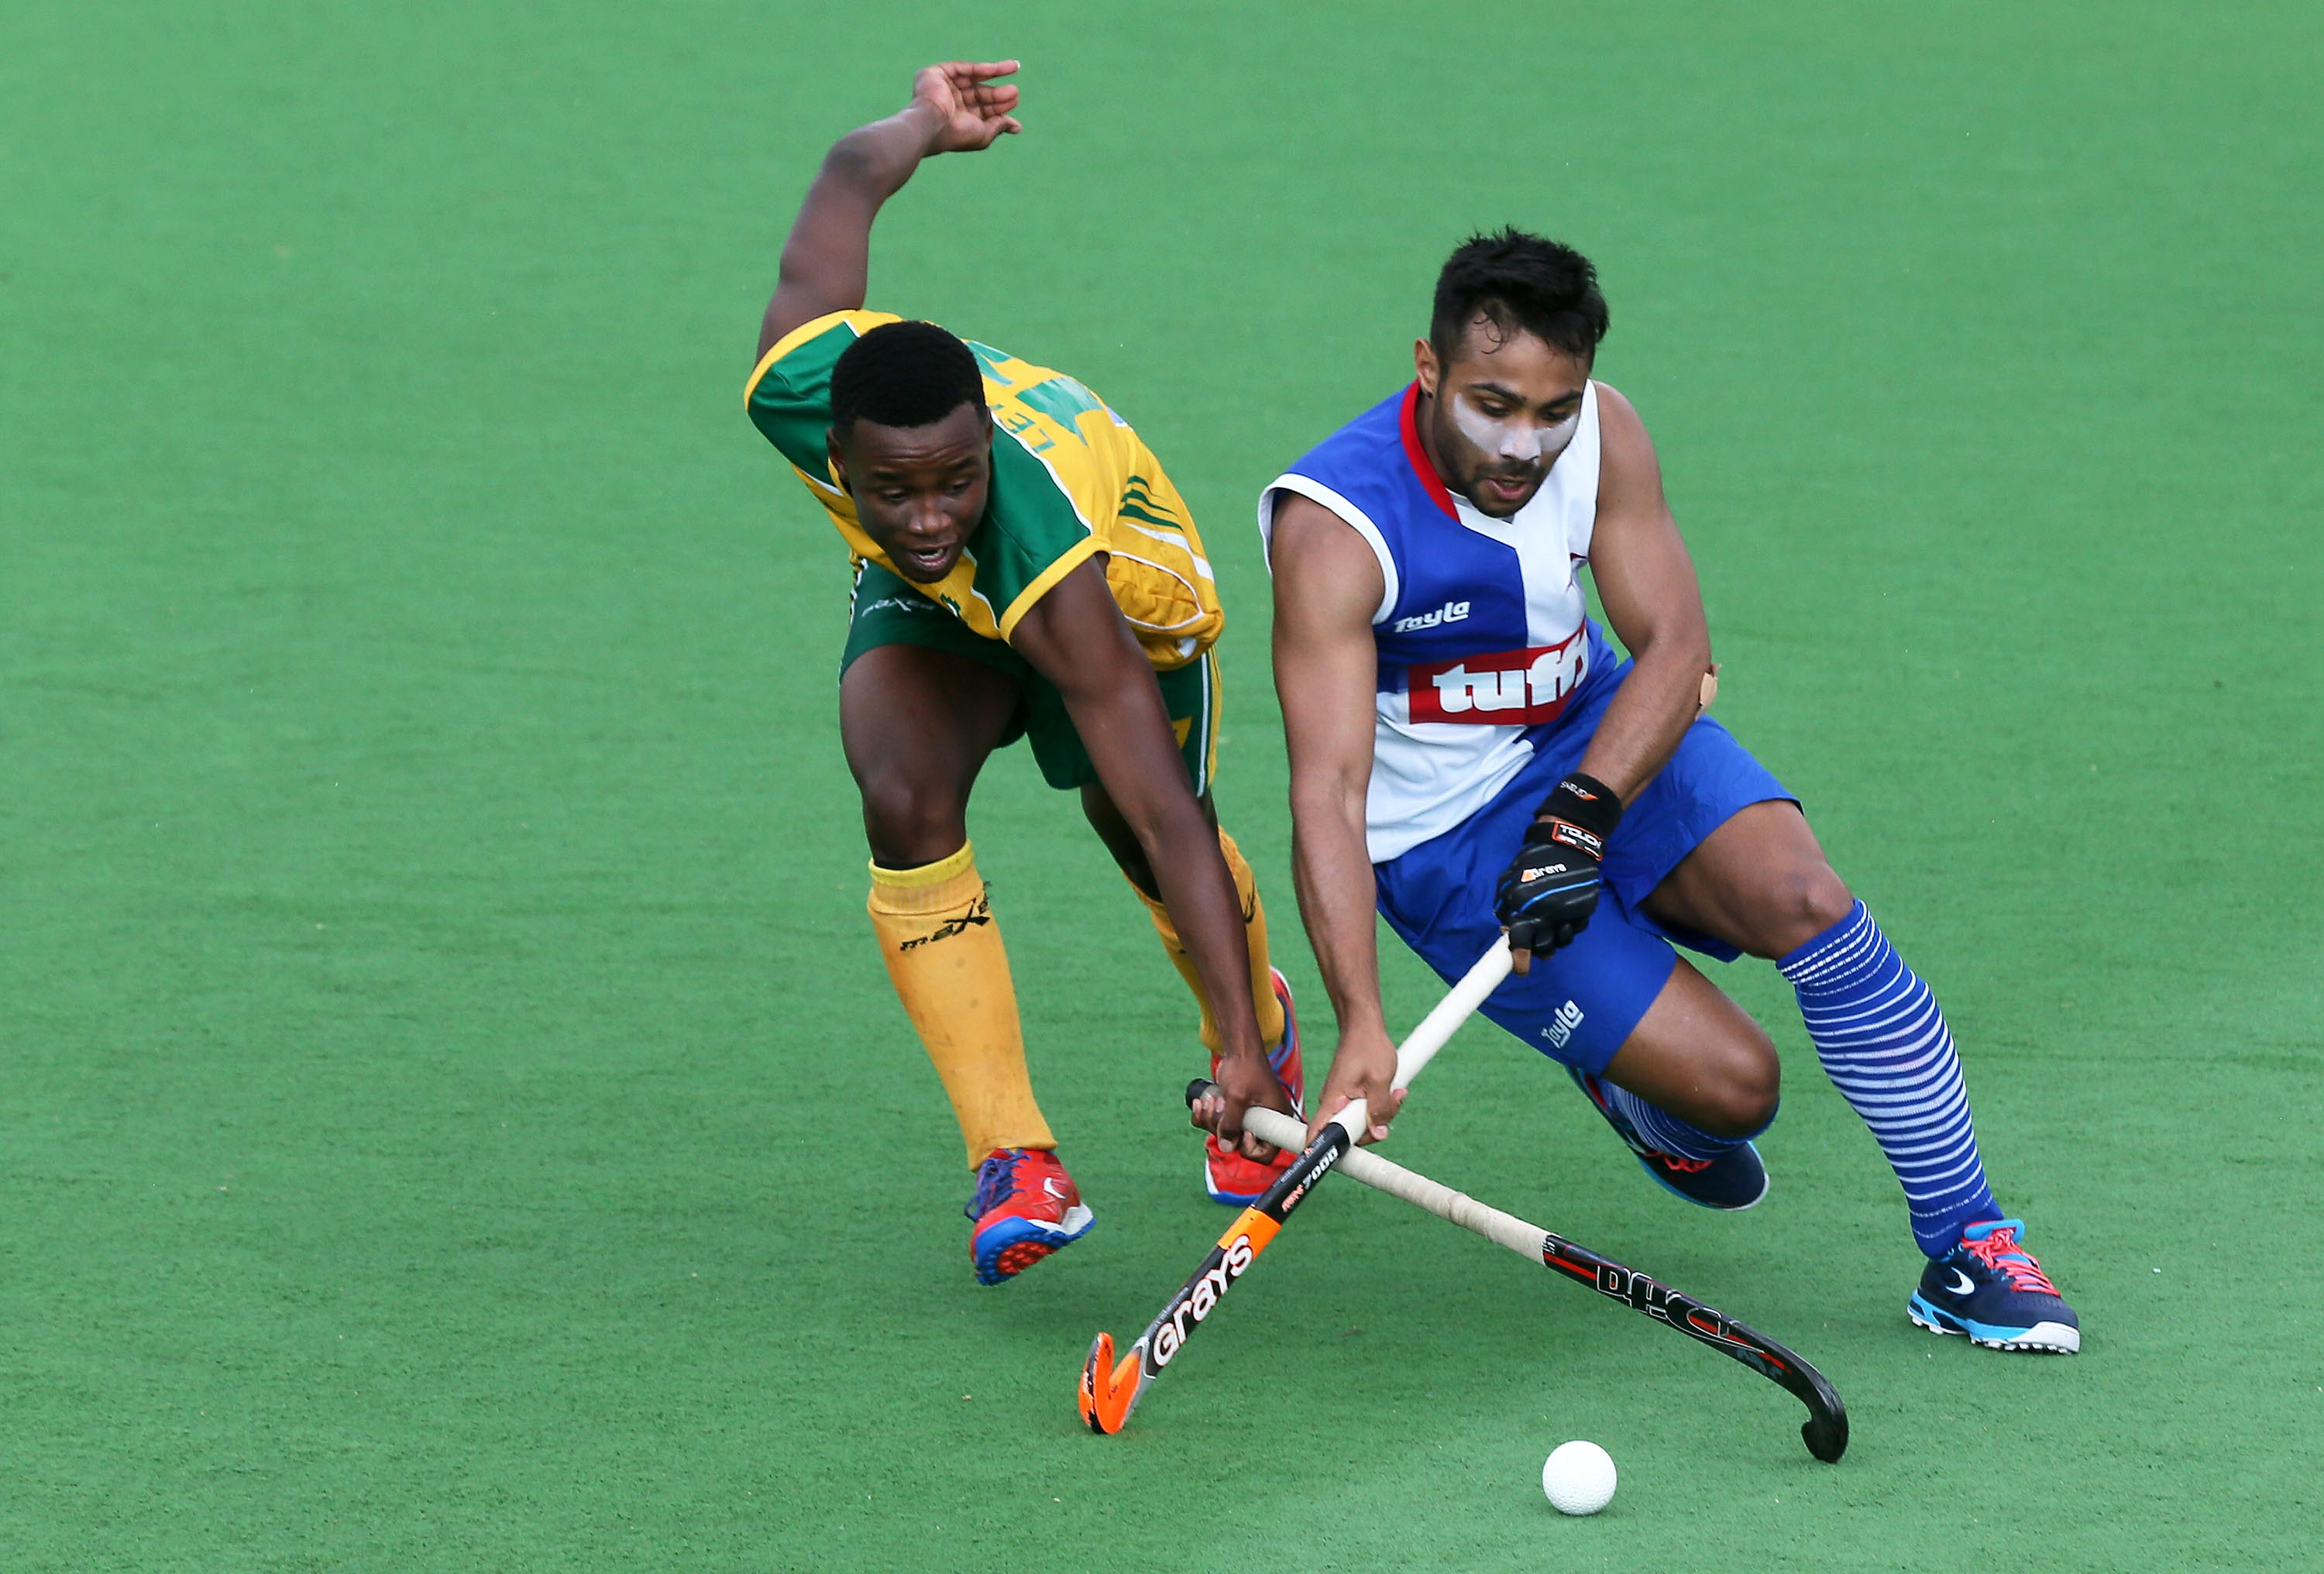 Southern Gauteng sides show their muscle at nationals